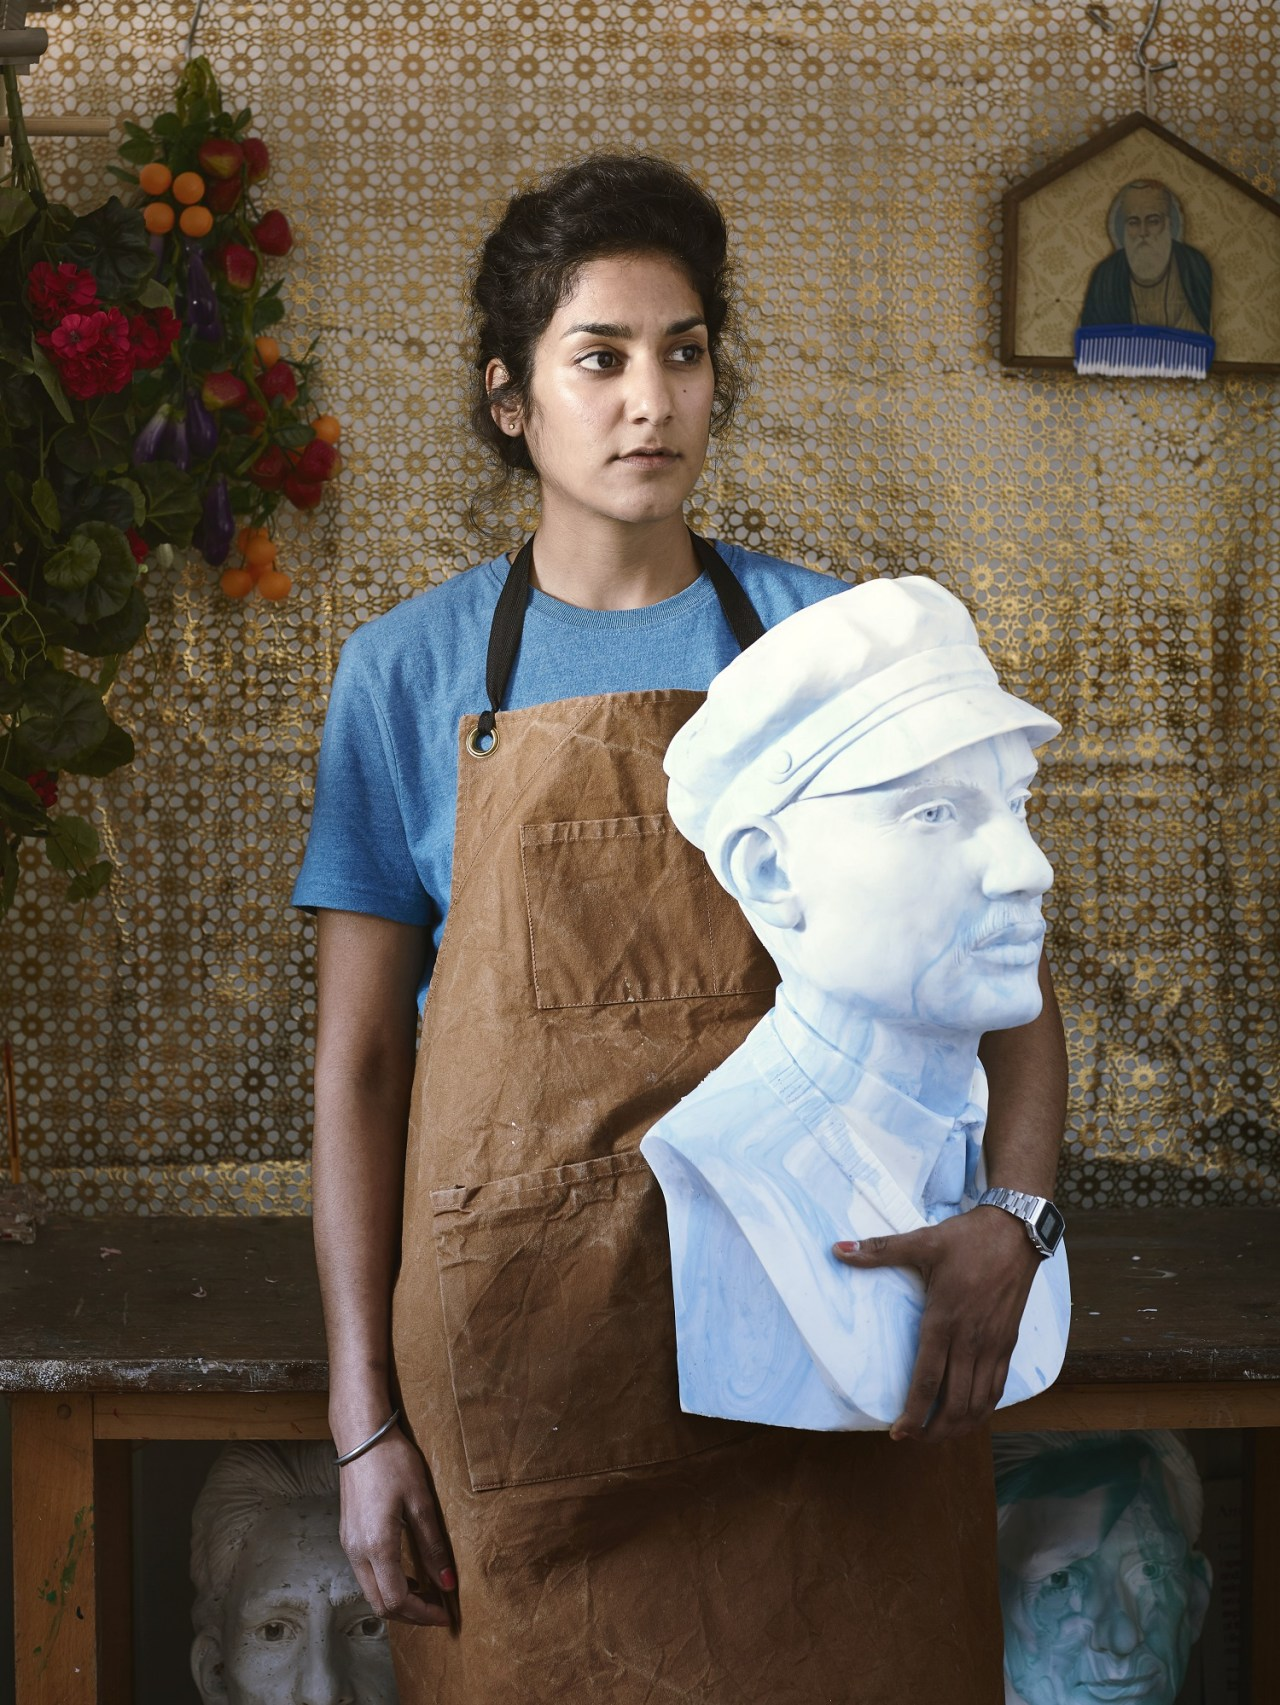 Jasleen Kaur, Marbled Busts, 2015. Image courtesy of the artist.